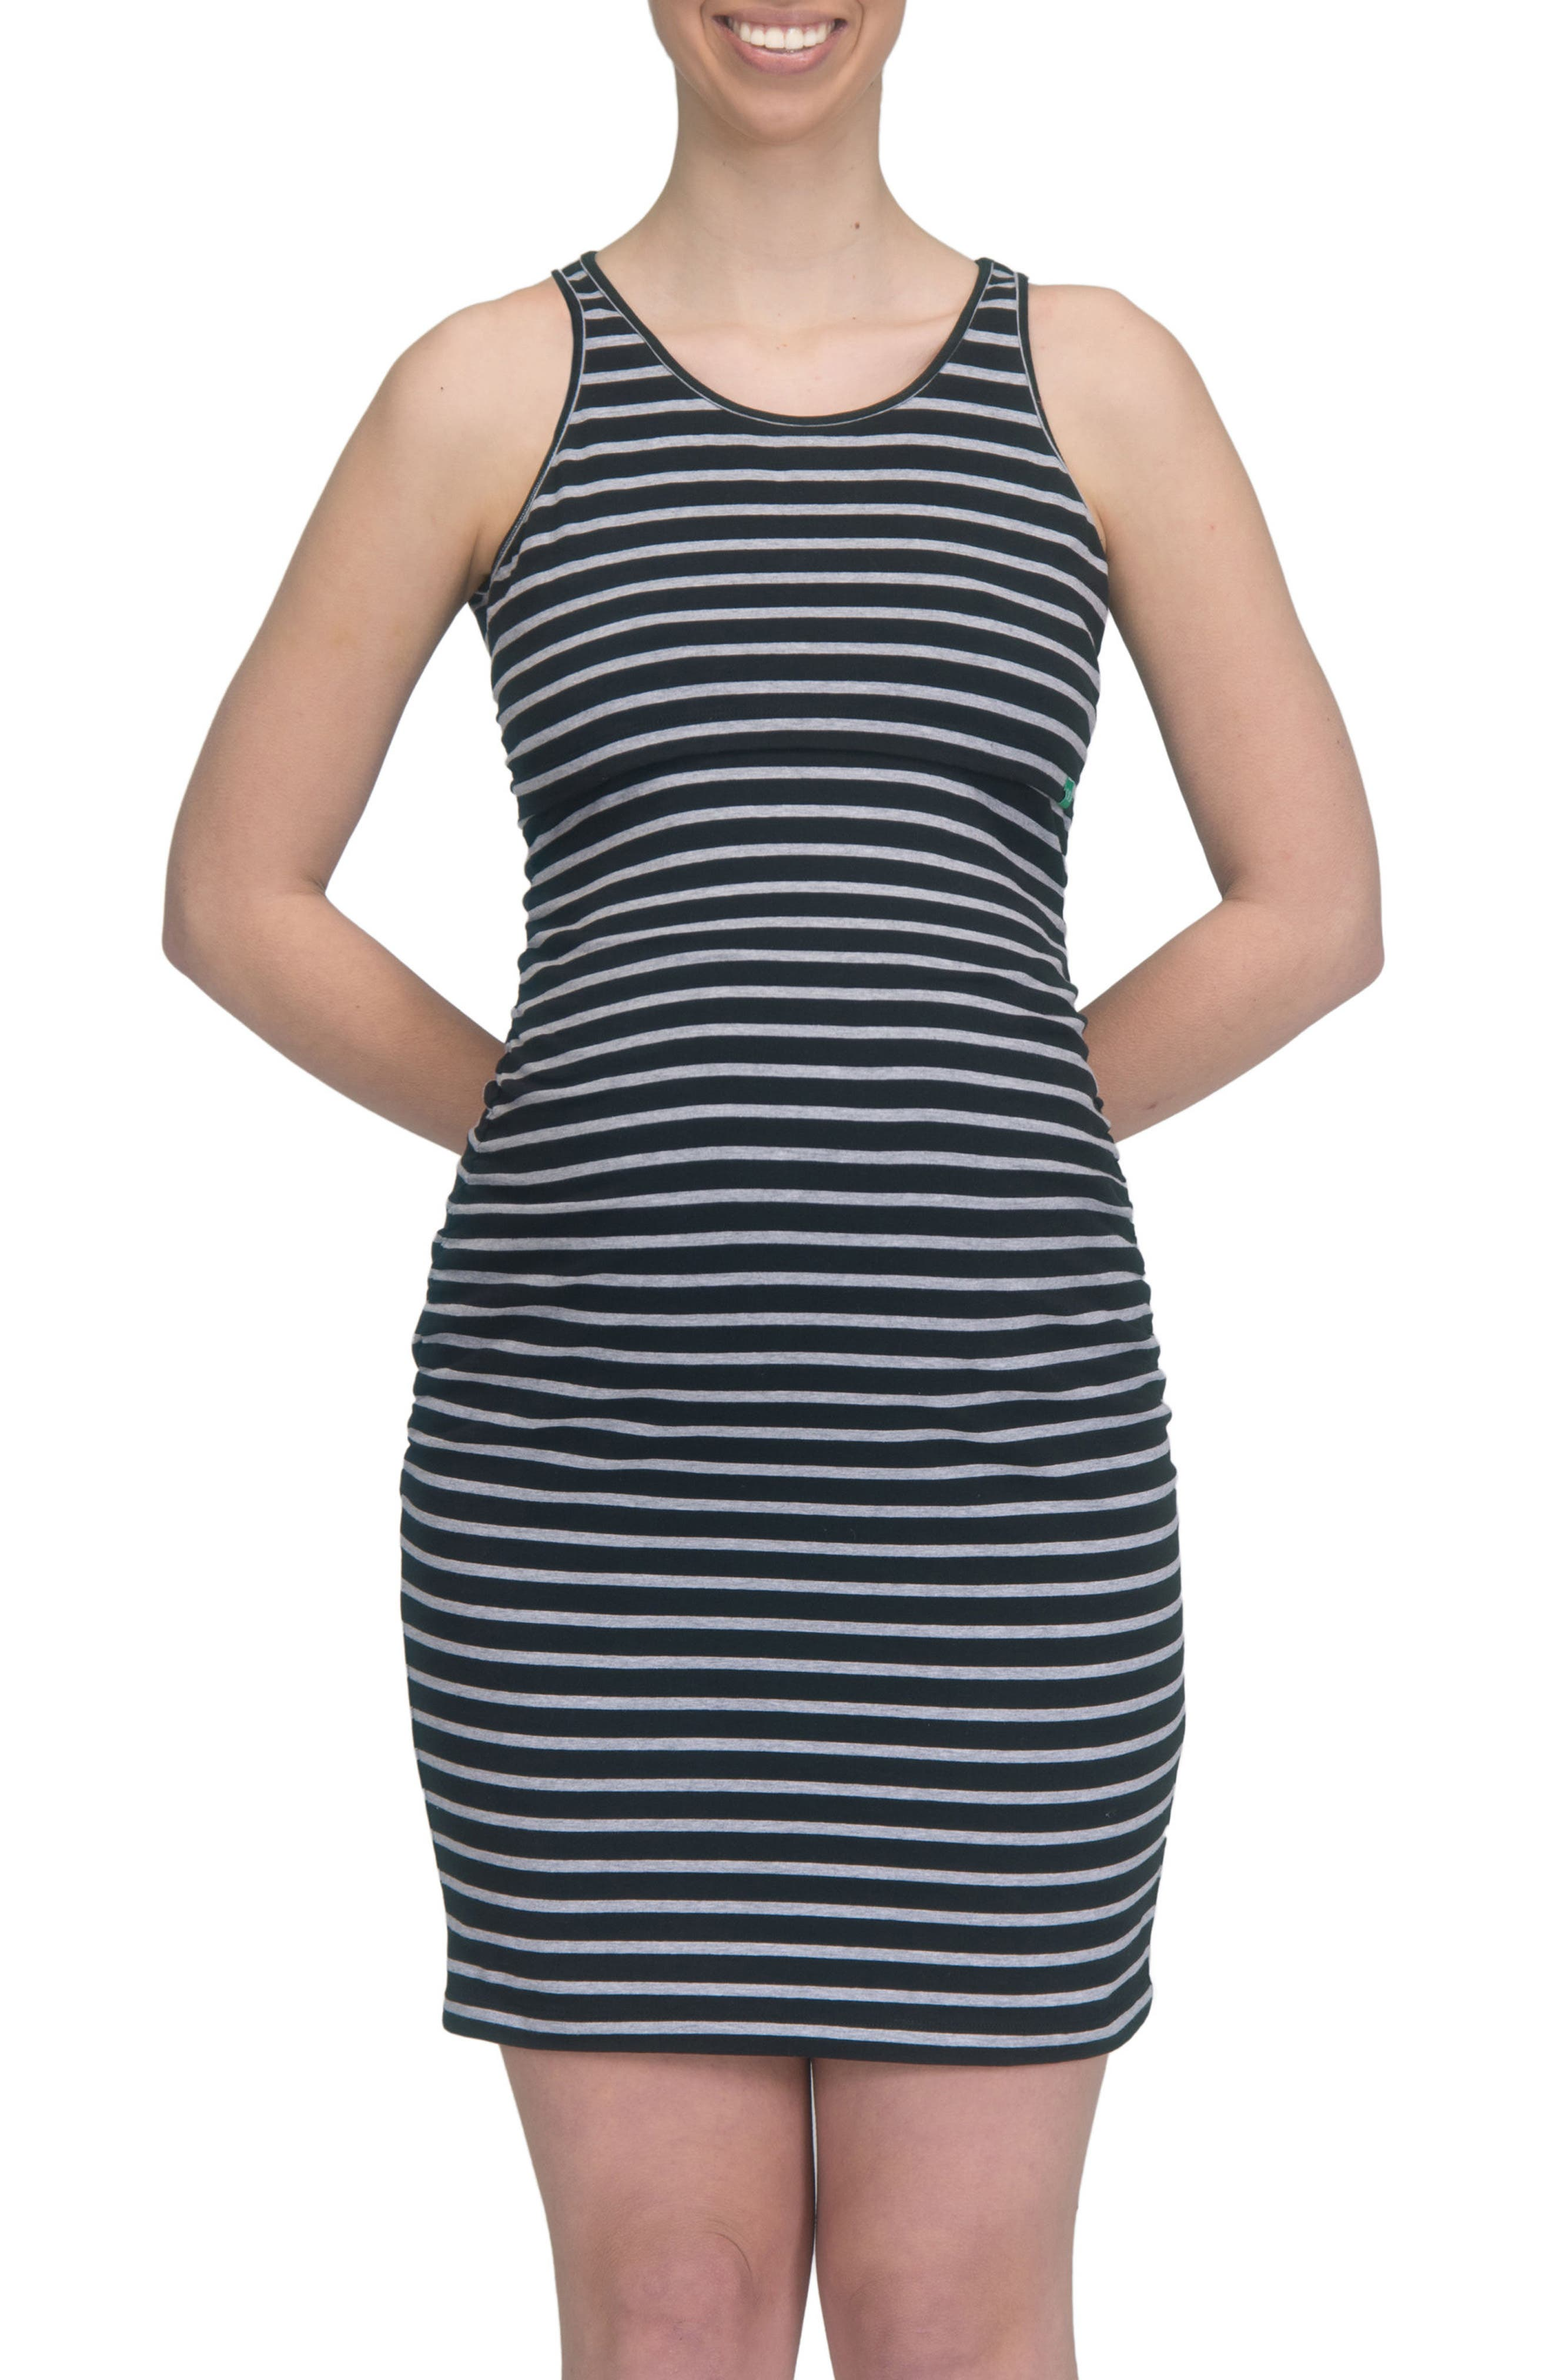 MODERN ETERNITY,                             Maternity/Nursing Tank Dress,                             Alternate thumbnail 5, color,                             BLACK/ GREY